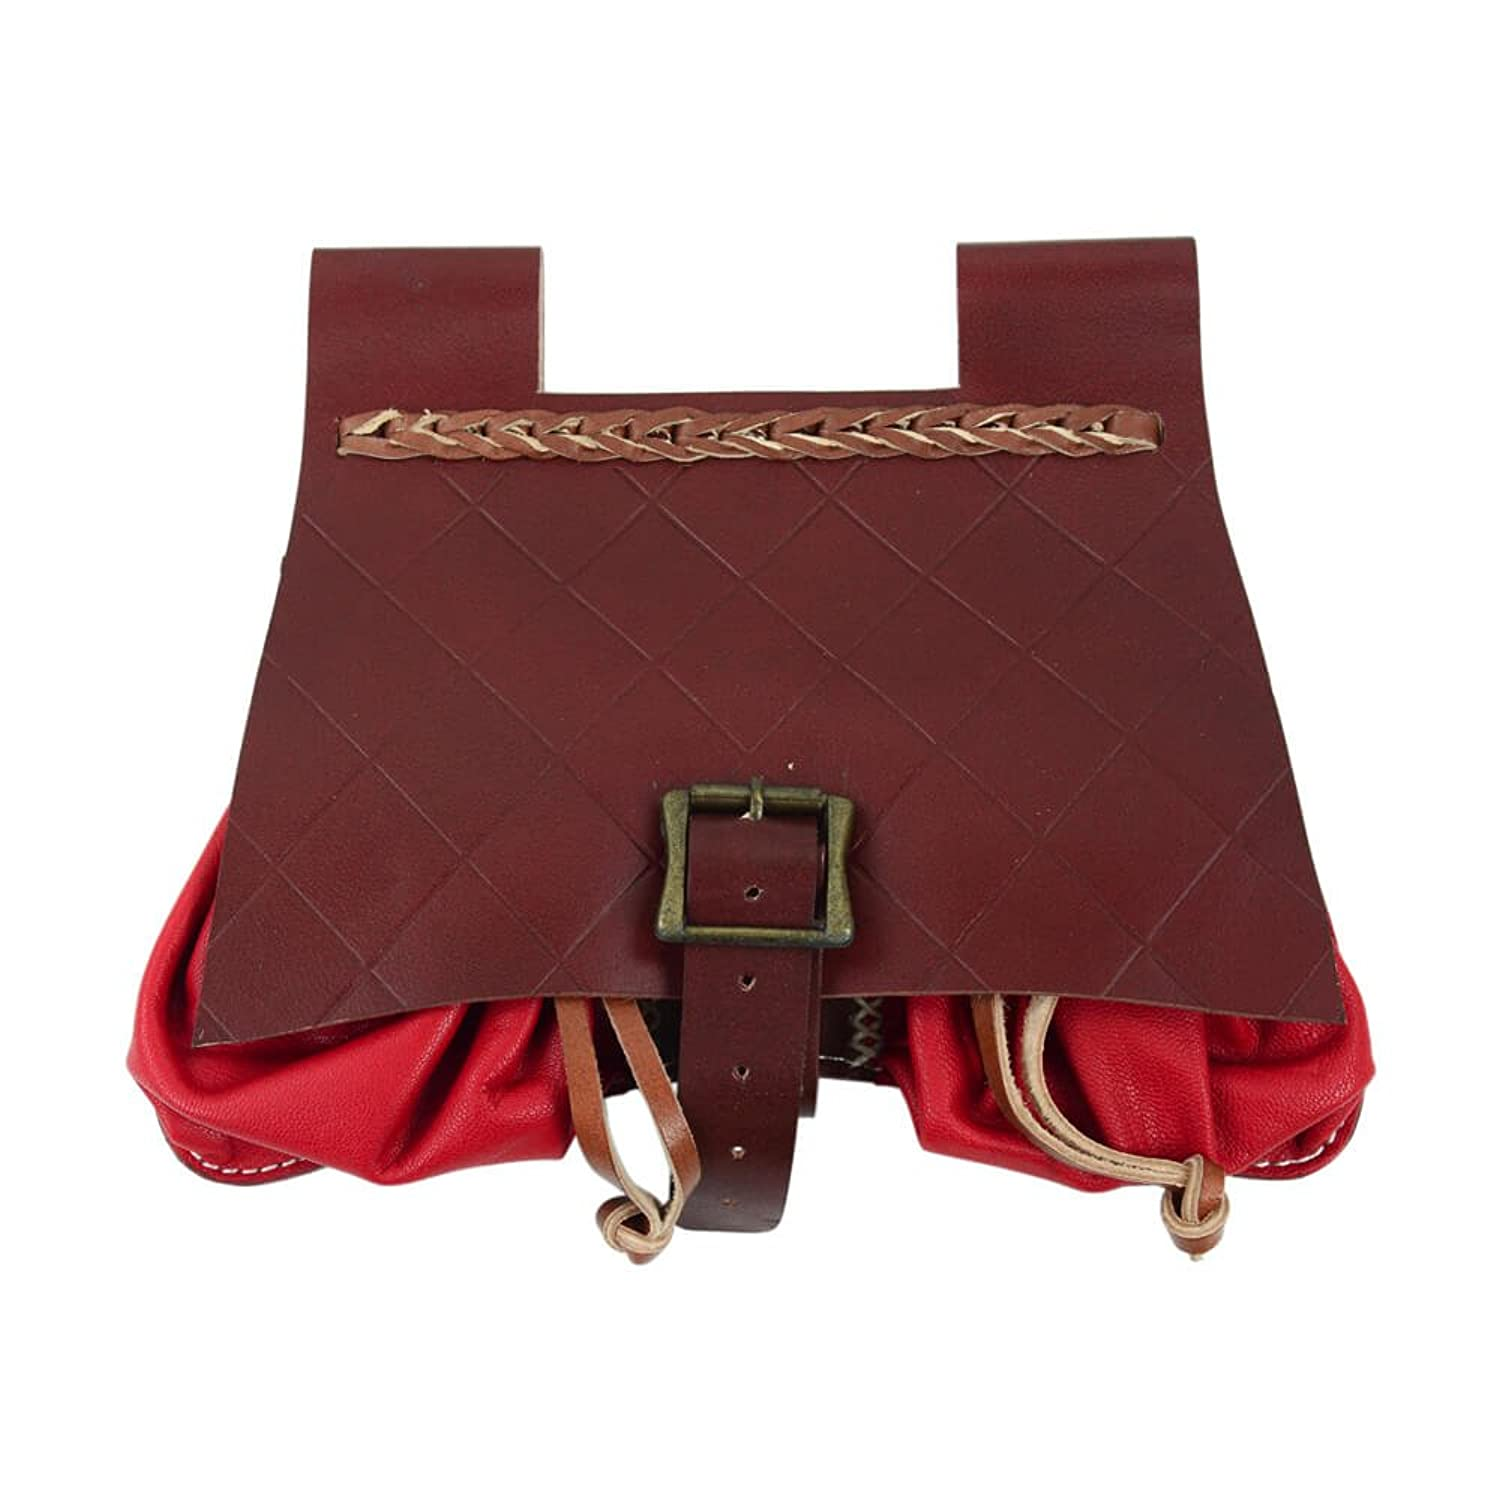 Deluxe Medieval Red Leather Belt Satchel